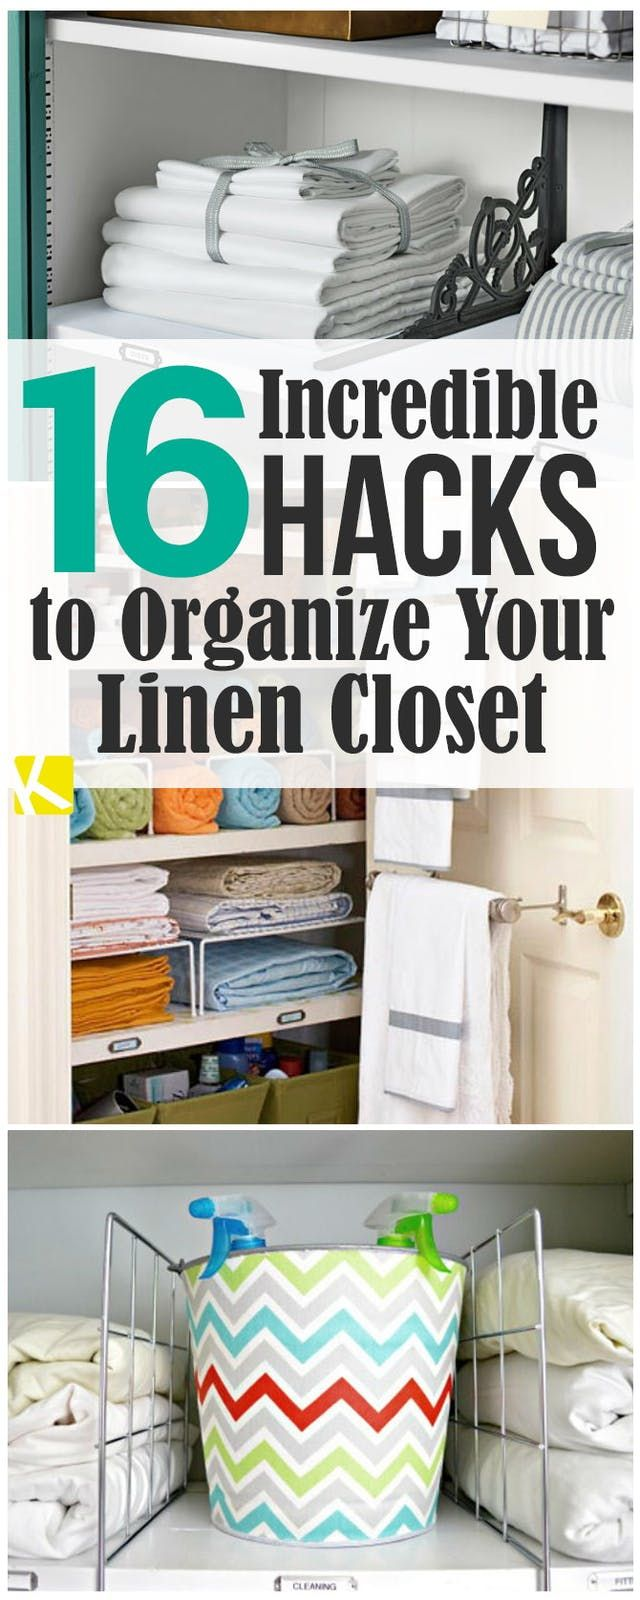 16 Incredible Hacks To Organize Your Linen Closet The Krazy Coupon Lady In 2020 Linen Closet Storage Small Linen Closets Linen Closet